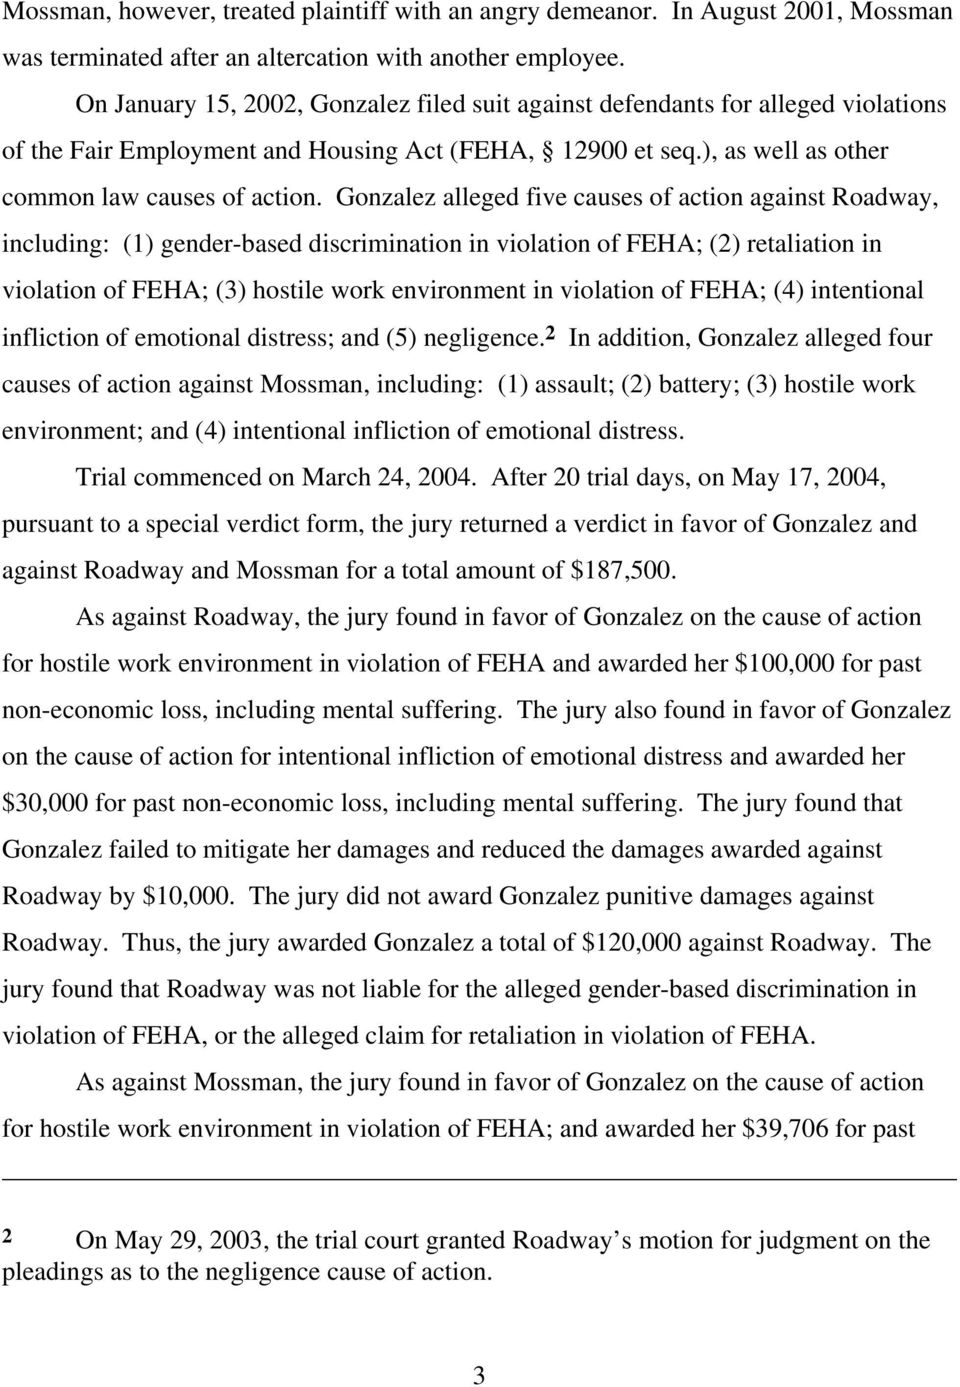 Gonzalez alleged five causes of action against Roadway, including: (1) gender-based discrimination in violation of FEHA; (2) retaliation in violation of FEHA; (3) hostile work environment in